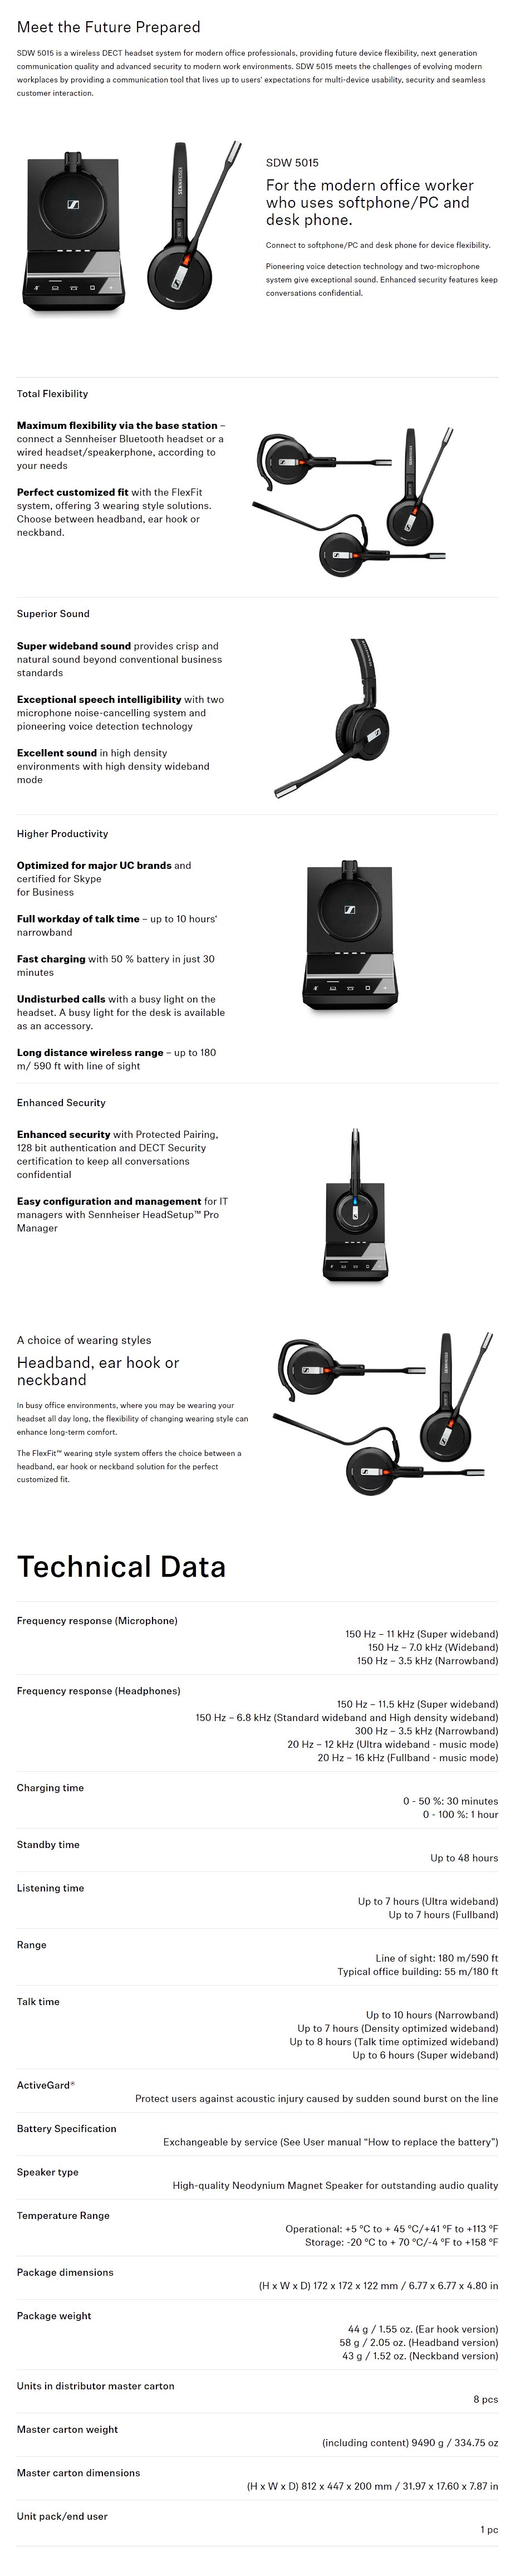 Sennheiser SDW 5015 DECT Wireless Headset with Base Station - Overview 1